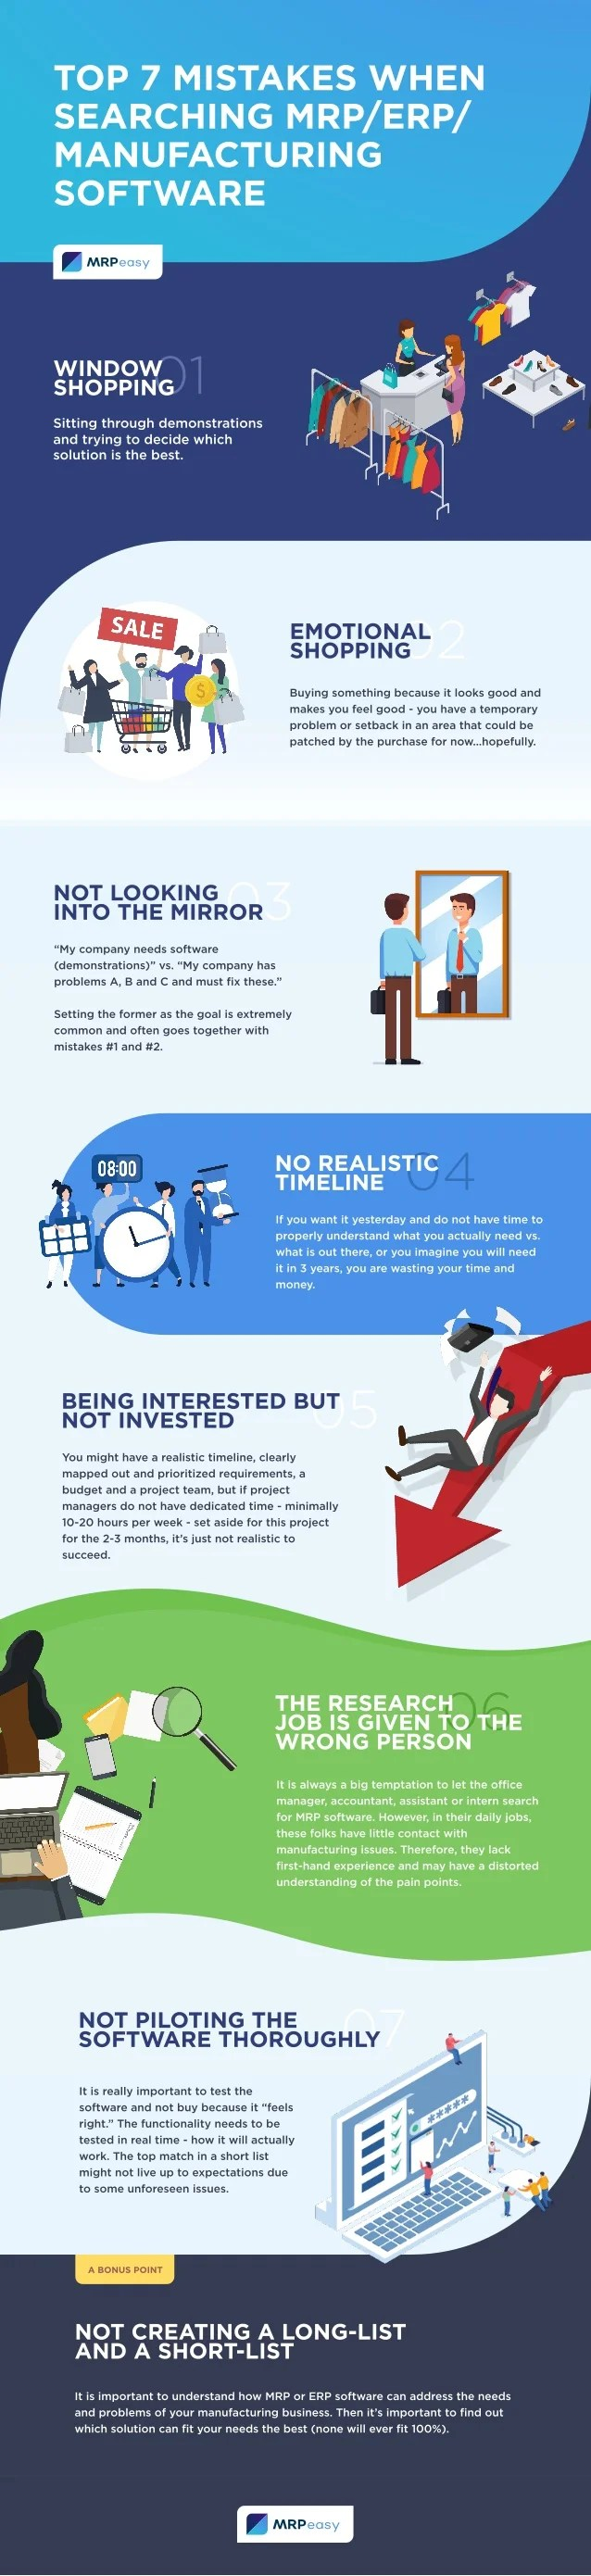 Erp Libra Infographic The Top 7 Mistakes To Avoid When Searching For An Erp